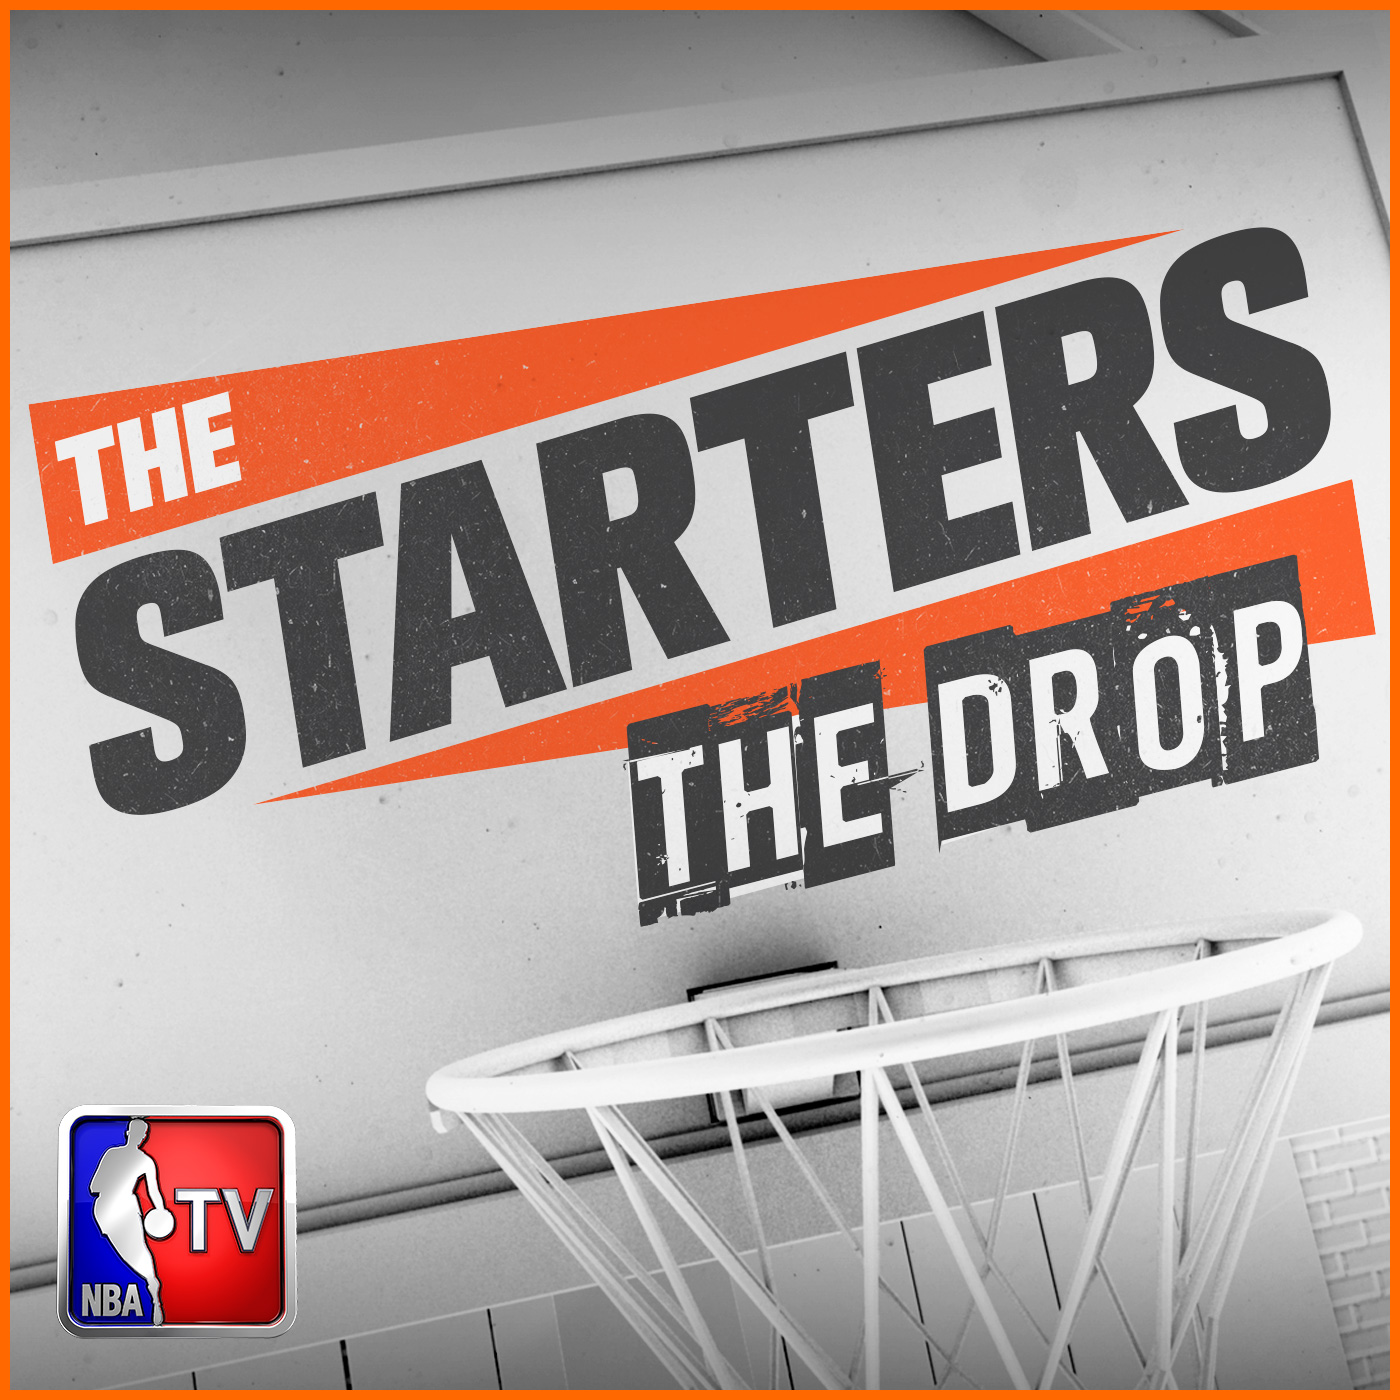 The Starters podcast logo